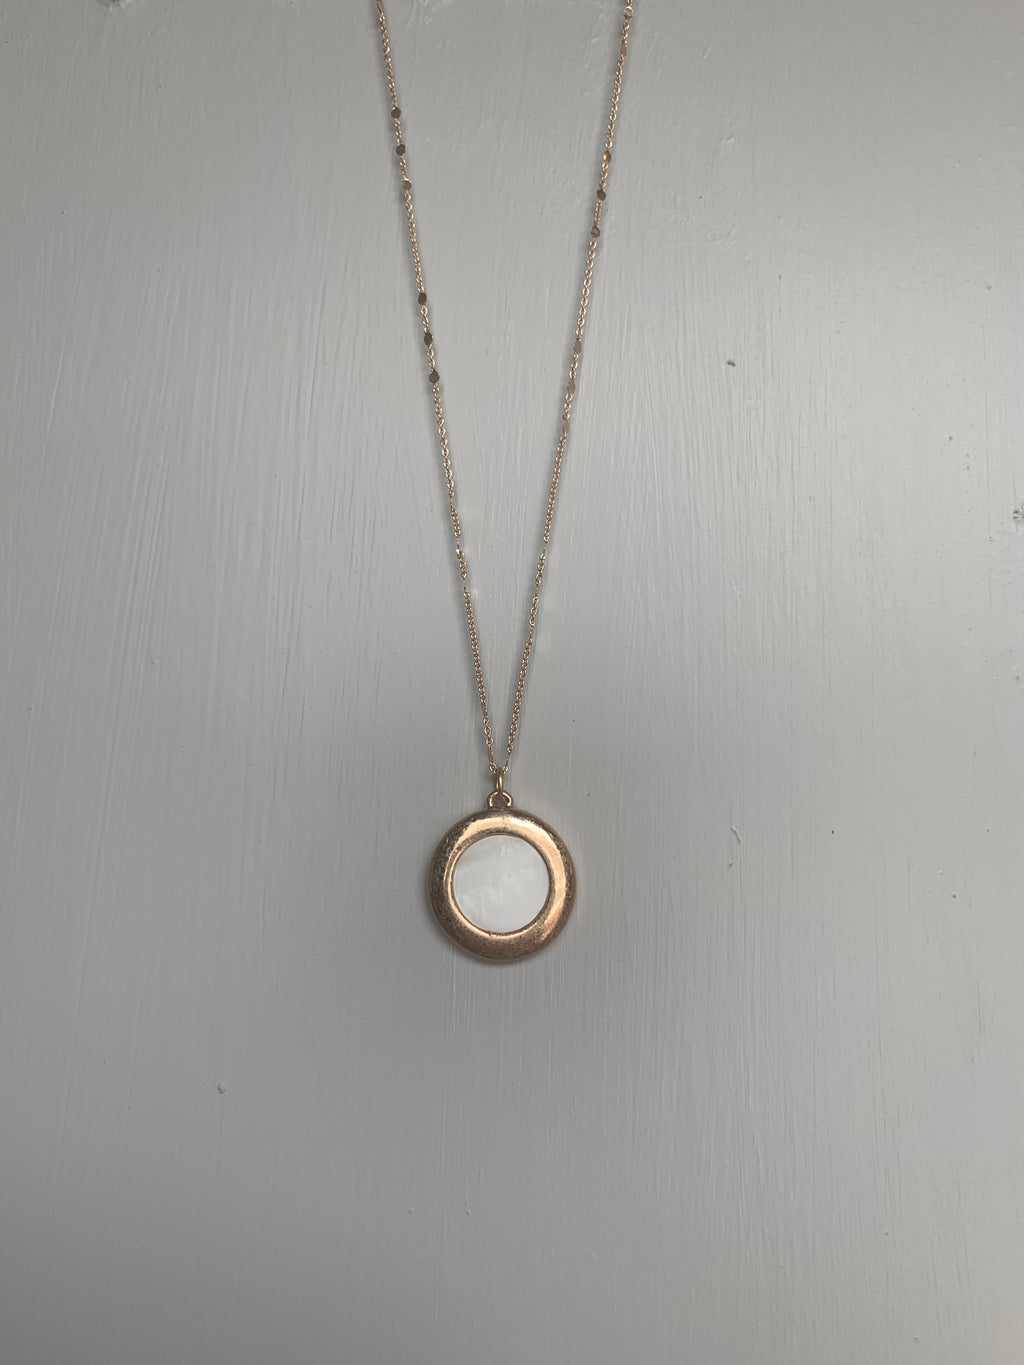 Gold & Marble Circle Necklace - Gift Shop Wrought 'n Apples